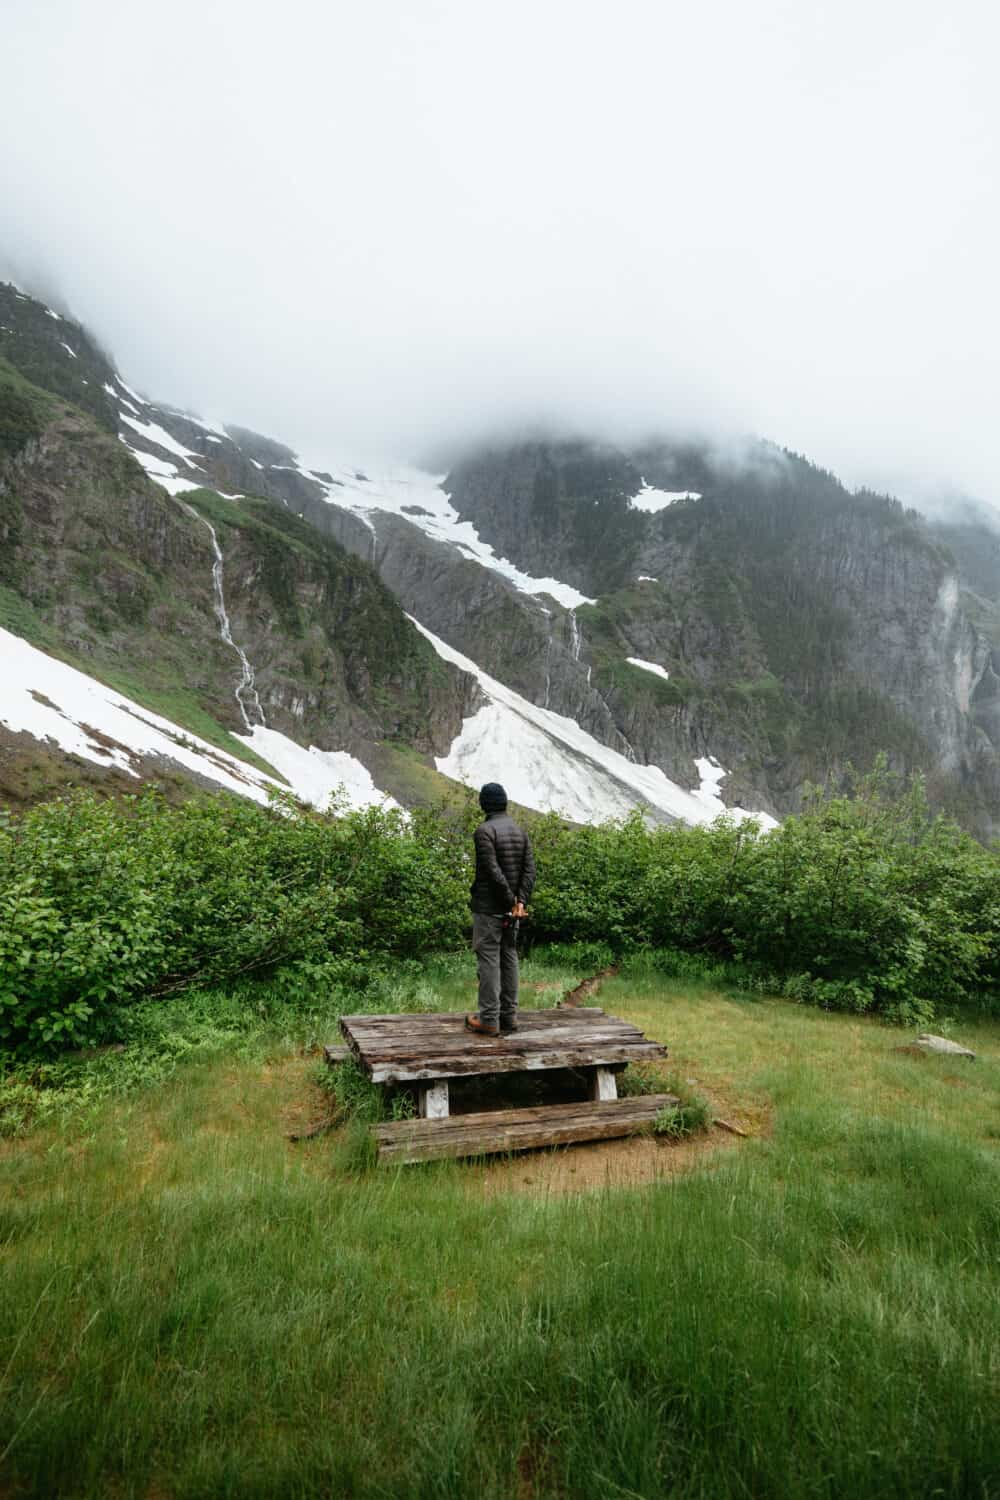 Man standing on a picnic table, with foggy mountains in the distance